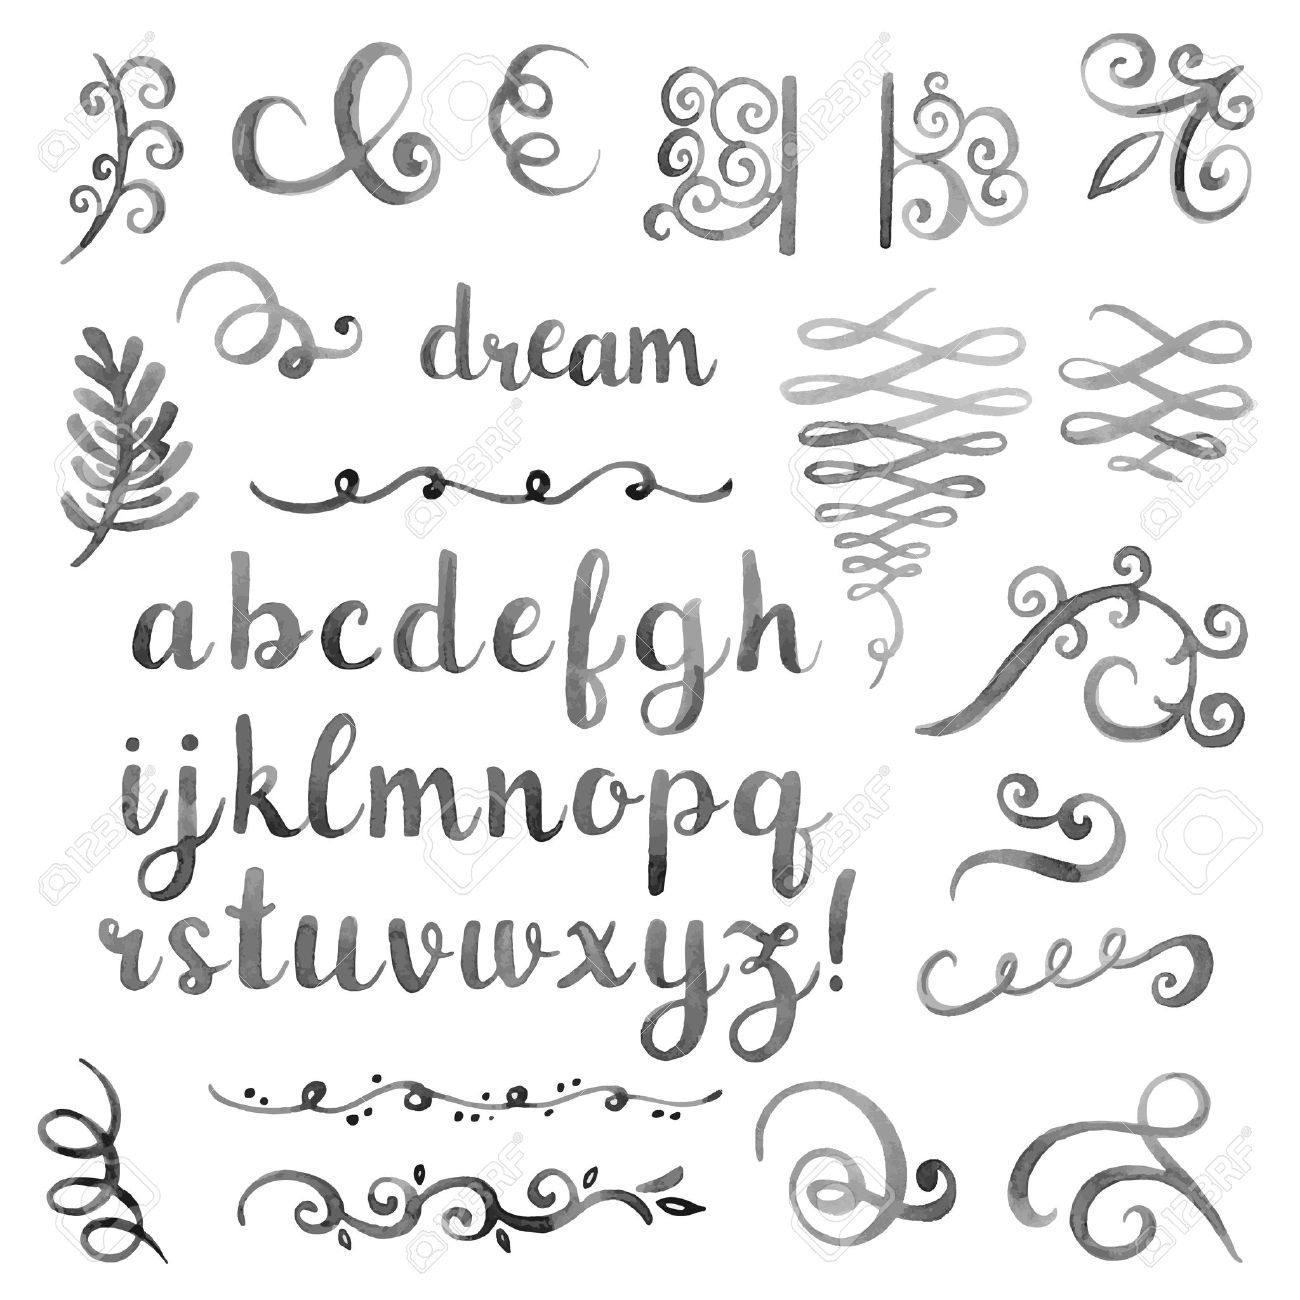 Lucida Calligraphy Regular Font Free Download Calligraphic Font Gese Ciceros Co